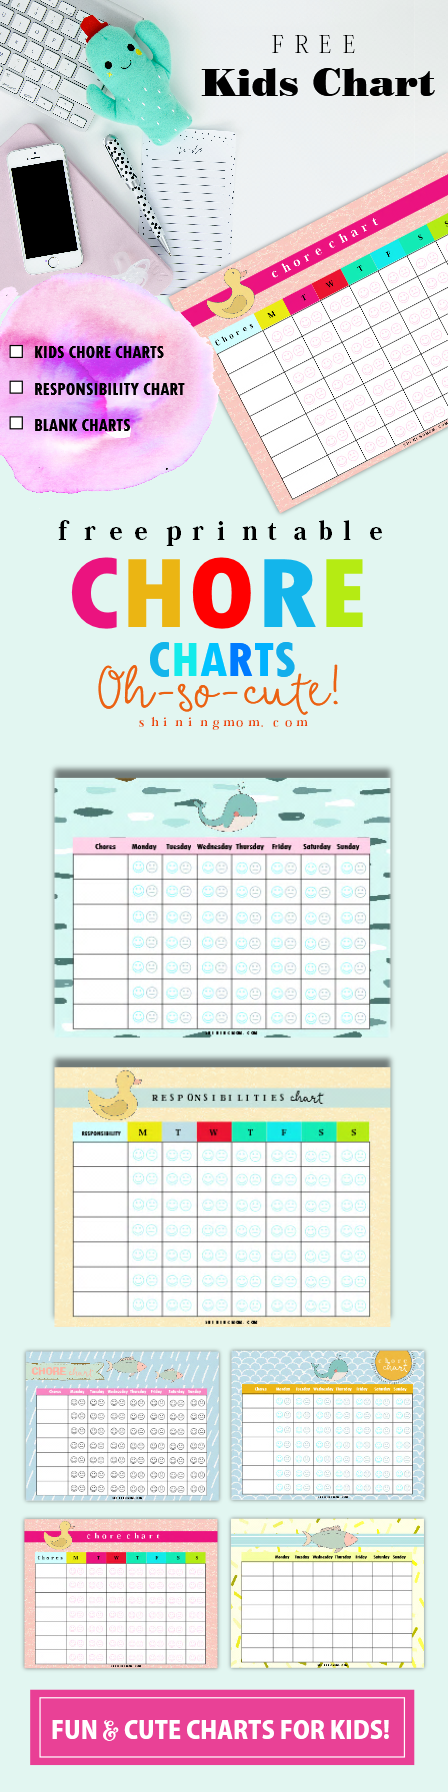 photo about Free Printable Chore Cards titled No cost Printable Chore Charts: 8 Definitely Adorable Options!